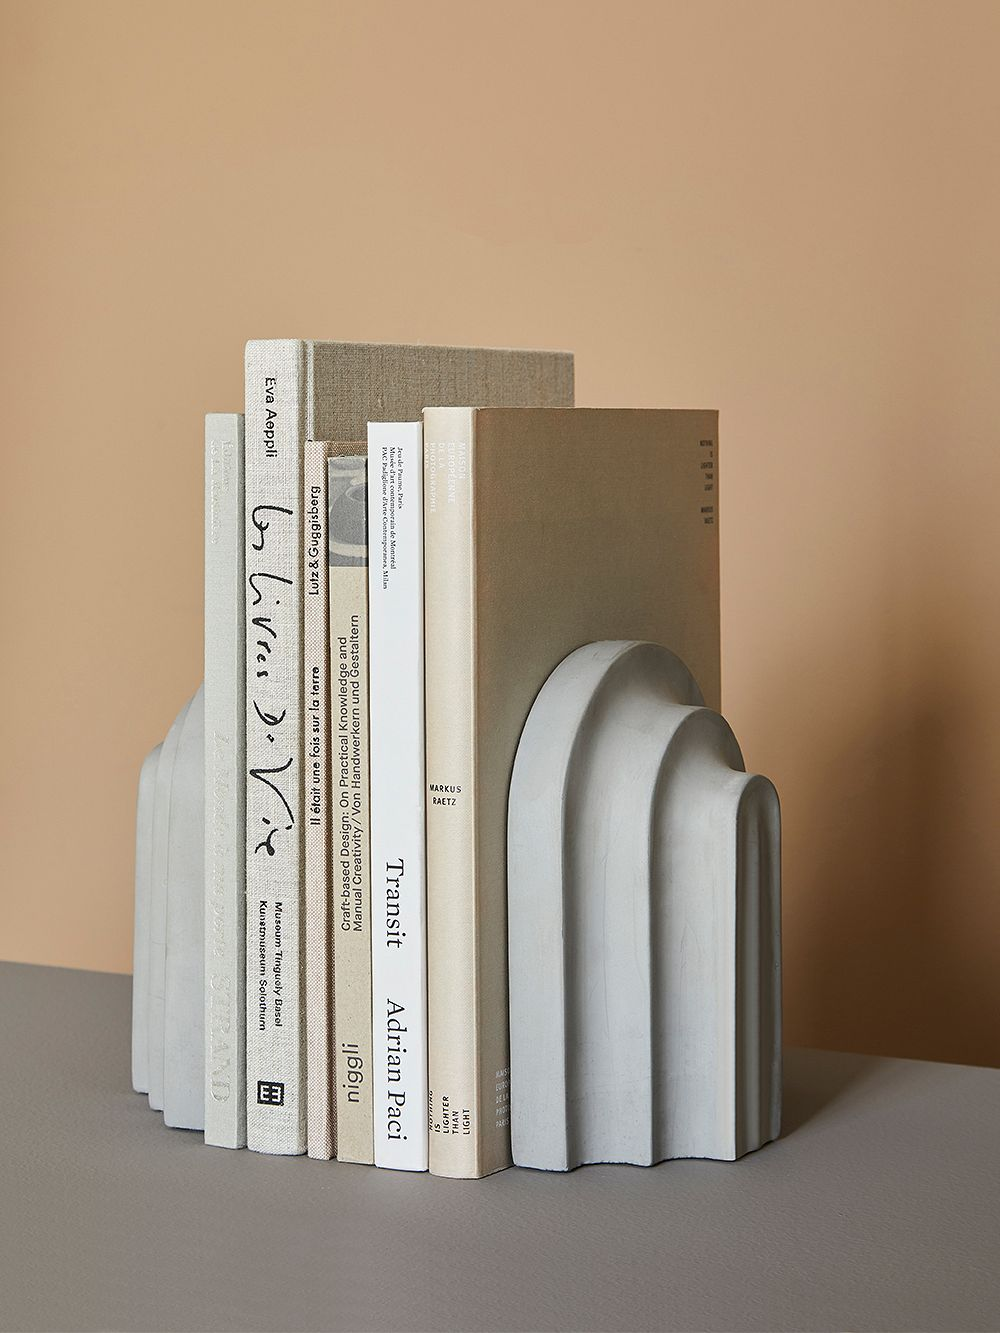 Woud's Arkiv bookend